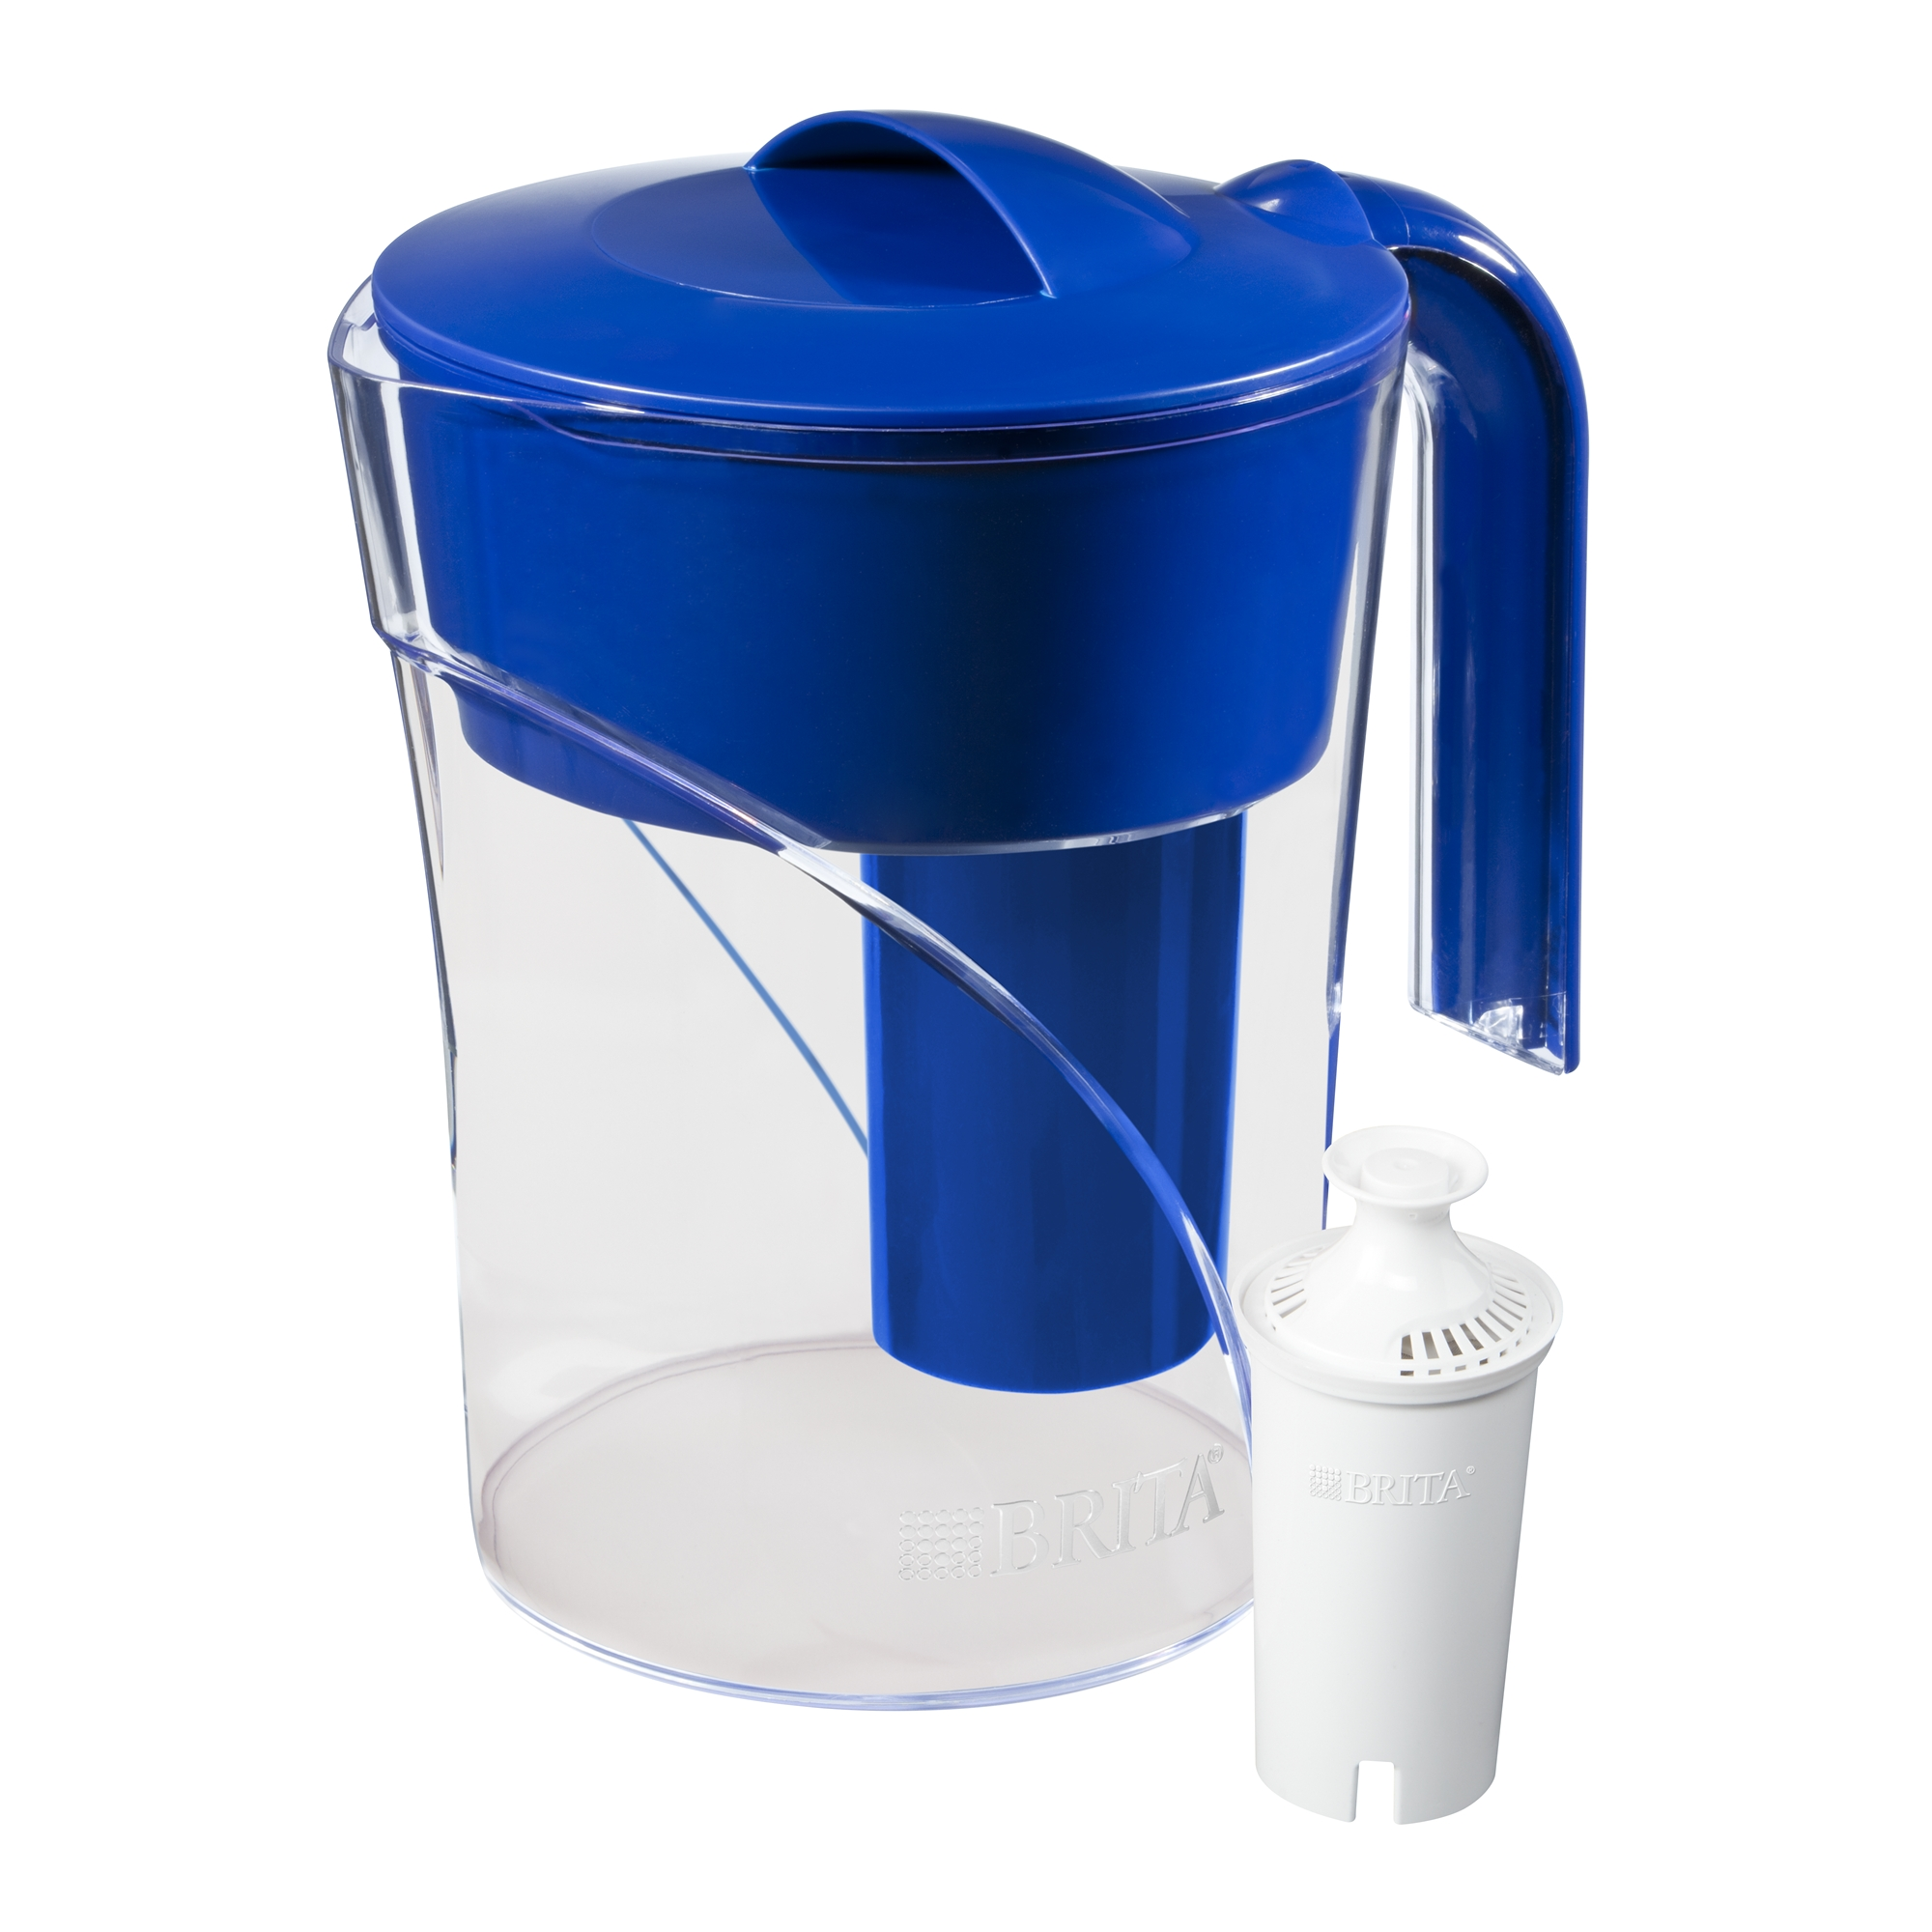 Brita 6 Cup Water Pitcher with Filter Only $12.84